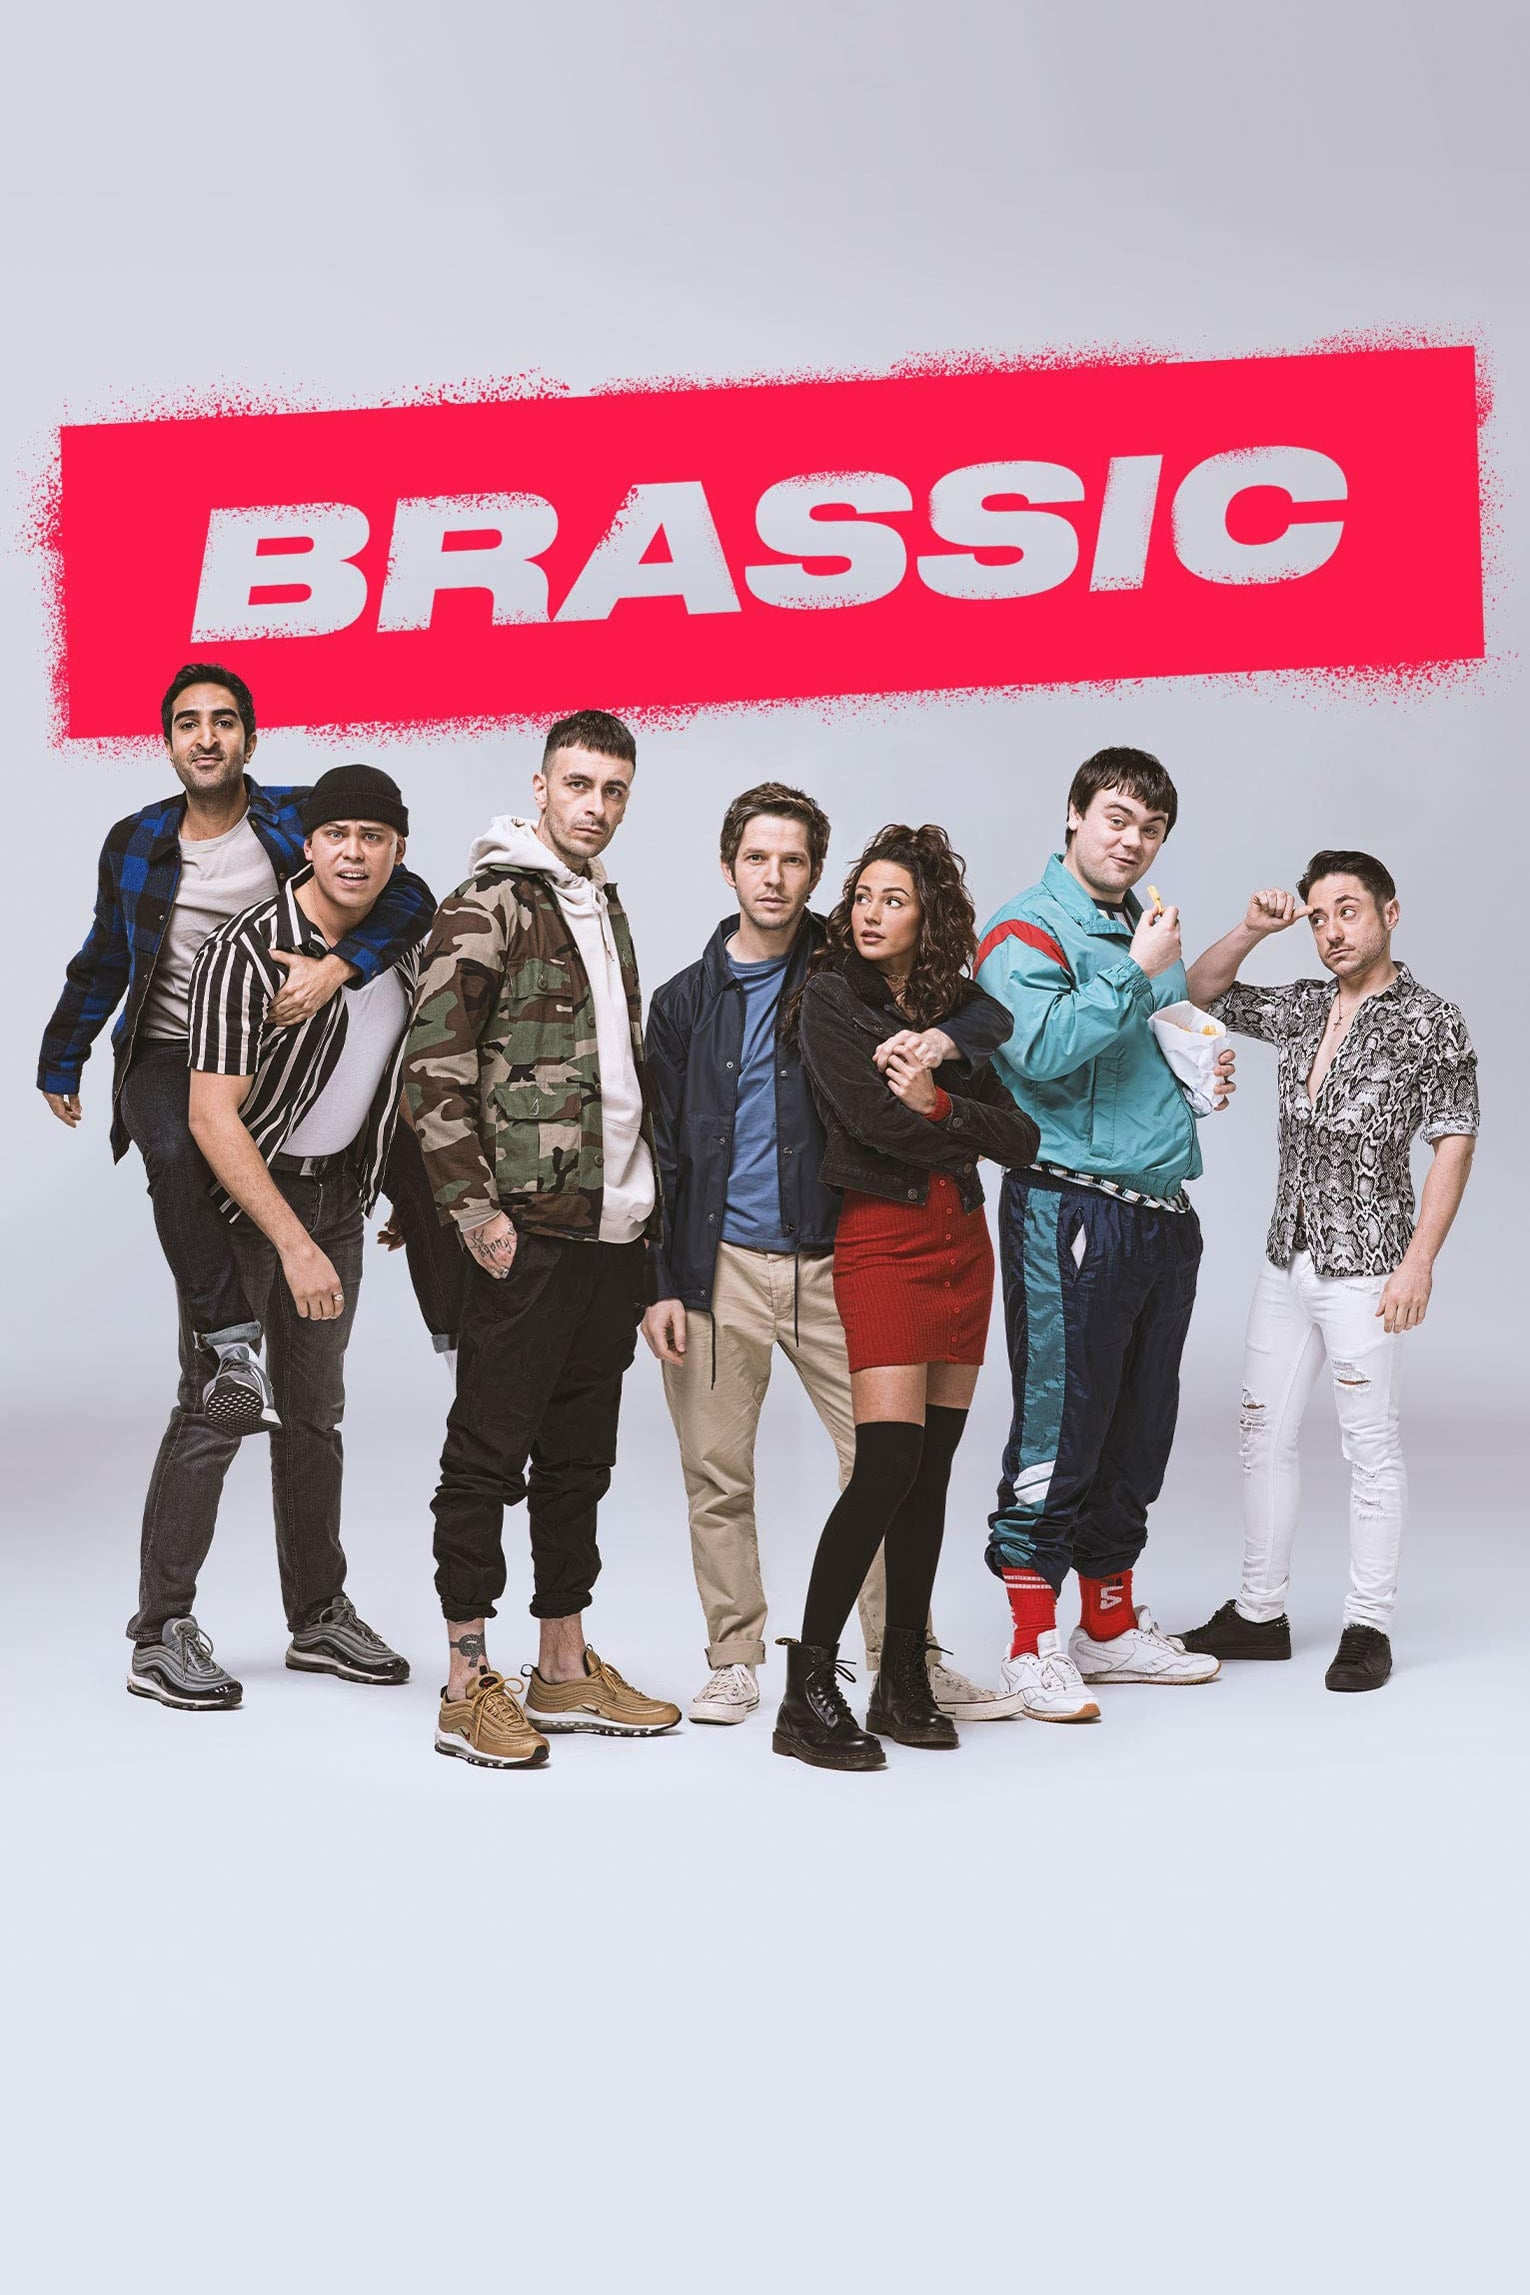 Brassic rating